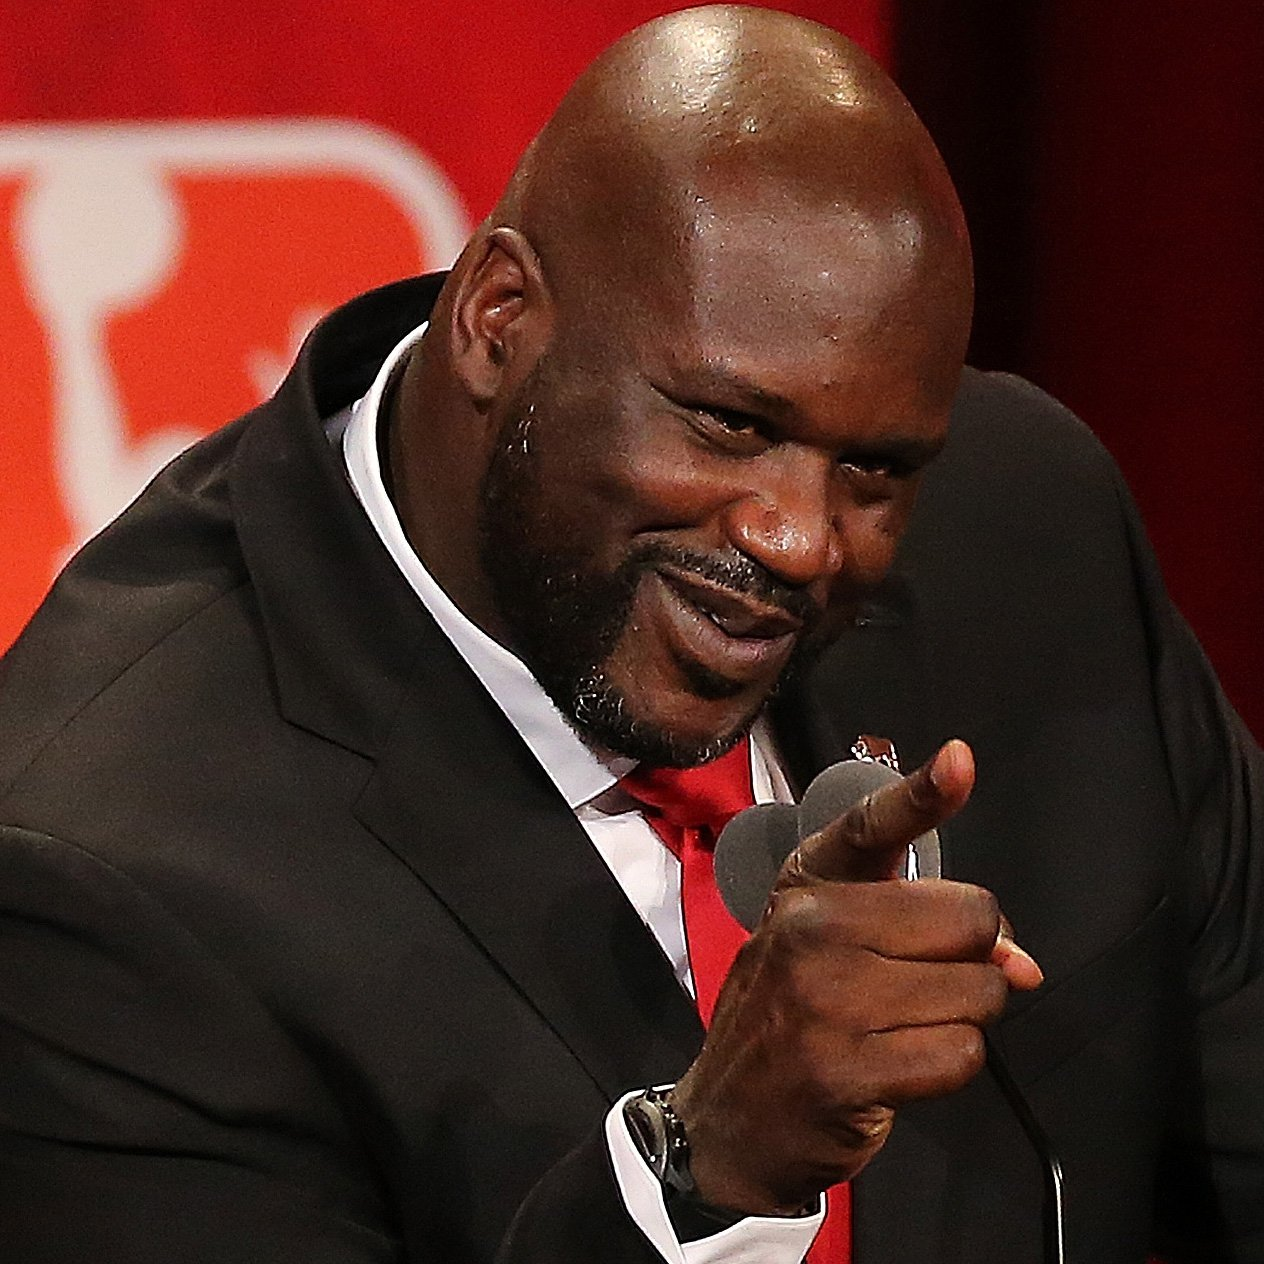 .@SHAQ: How spending $1 million in one day changed my financial strategy forever https://t.co/Hj2XMDreG8